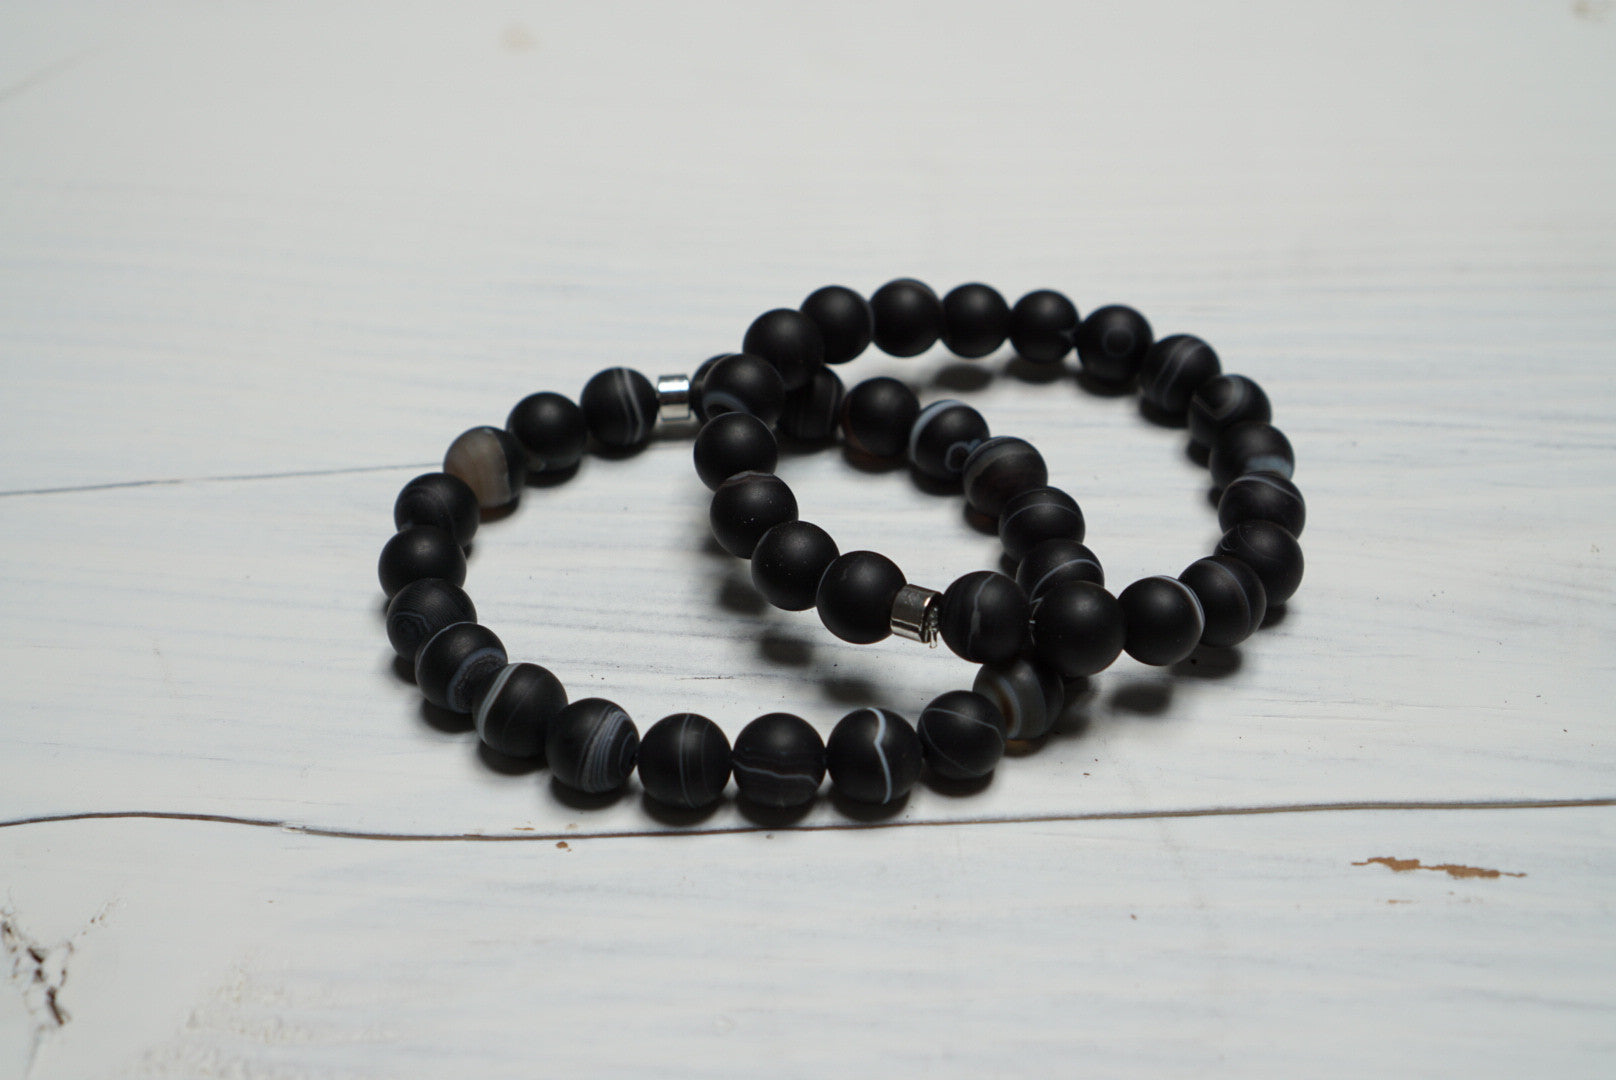 Black Agate - Healing Stone and Energy Bracelet/ Good Fortune/ Great Spirit